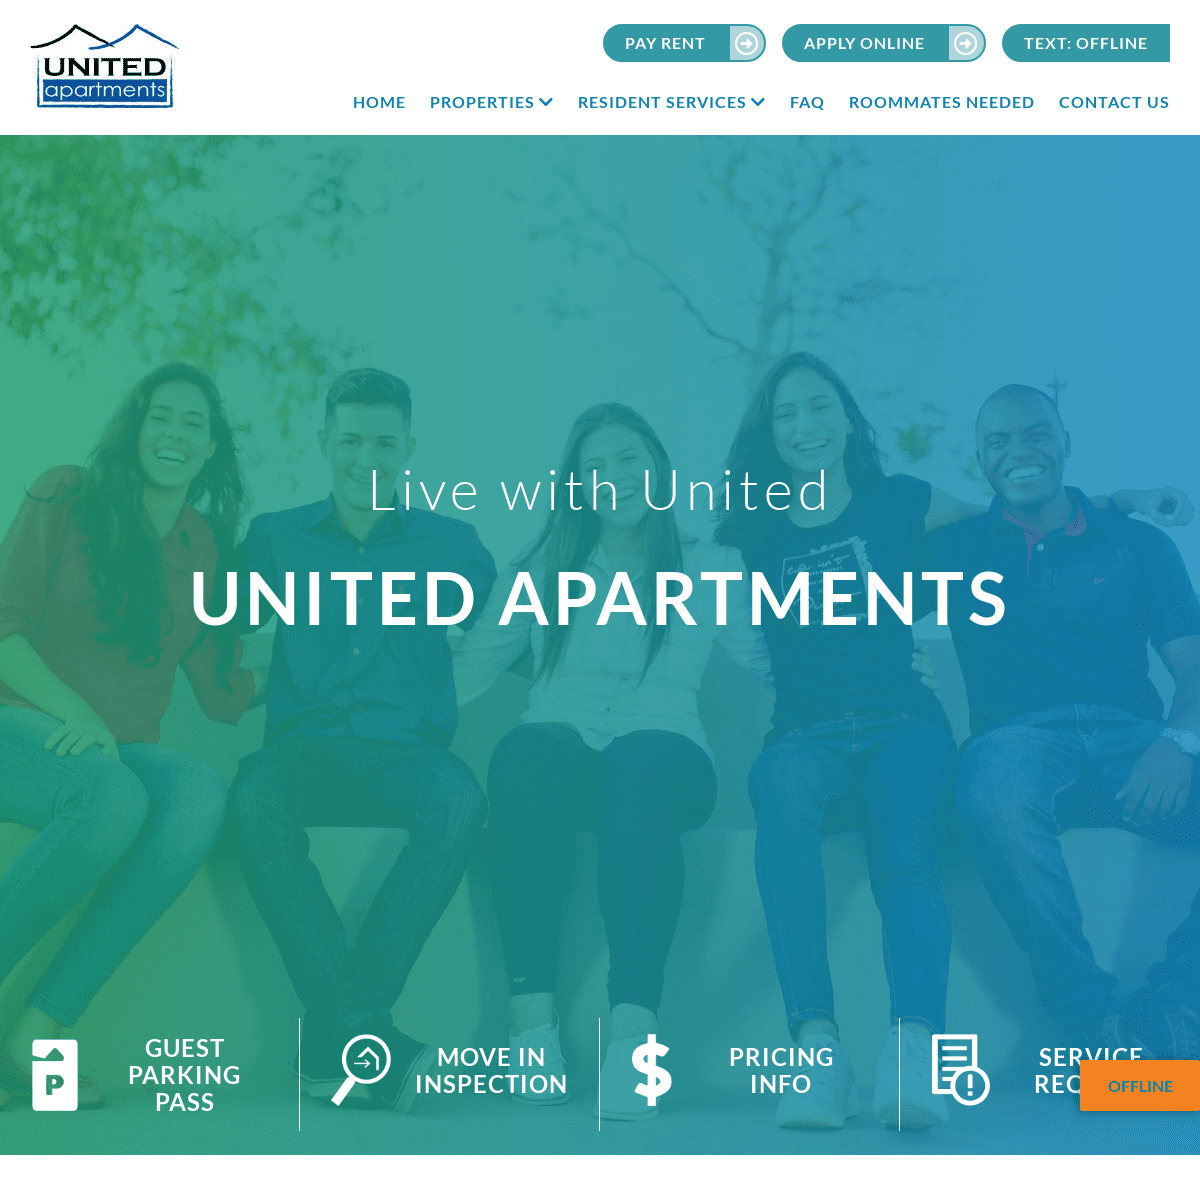 Home - United Apartments